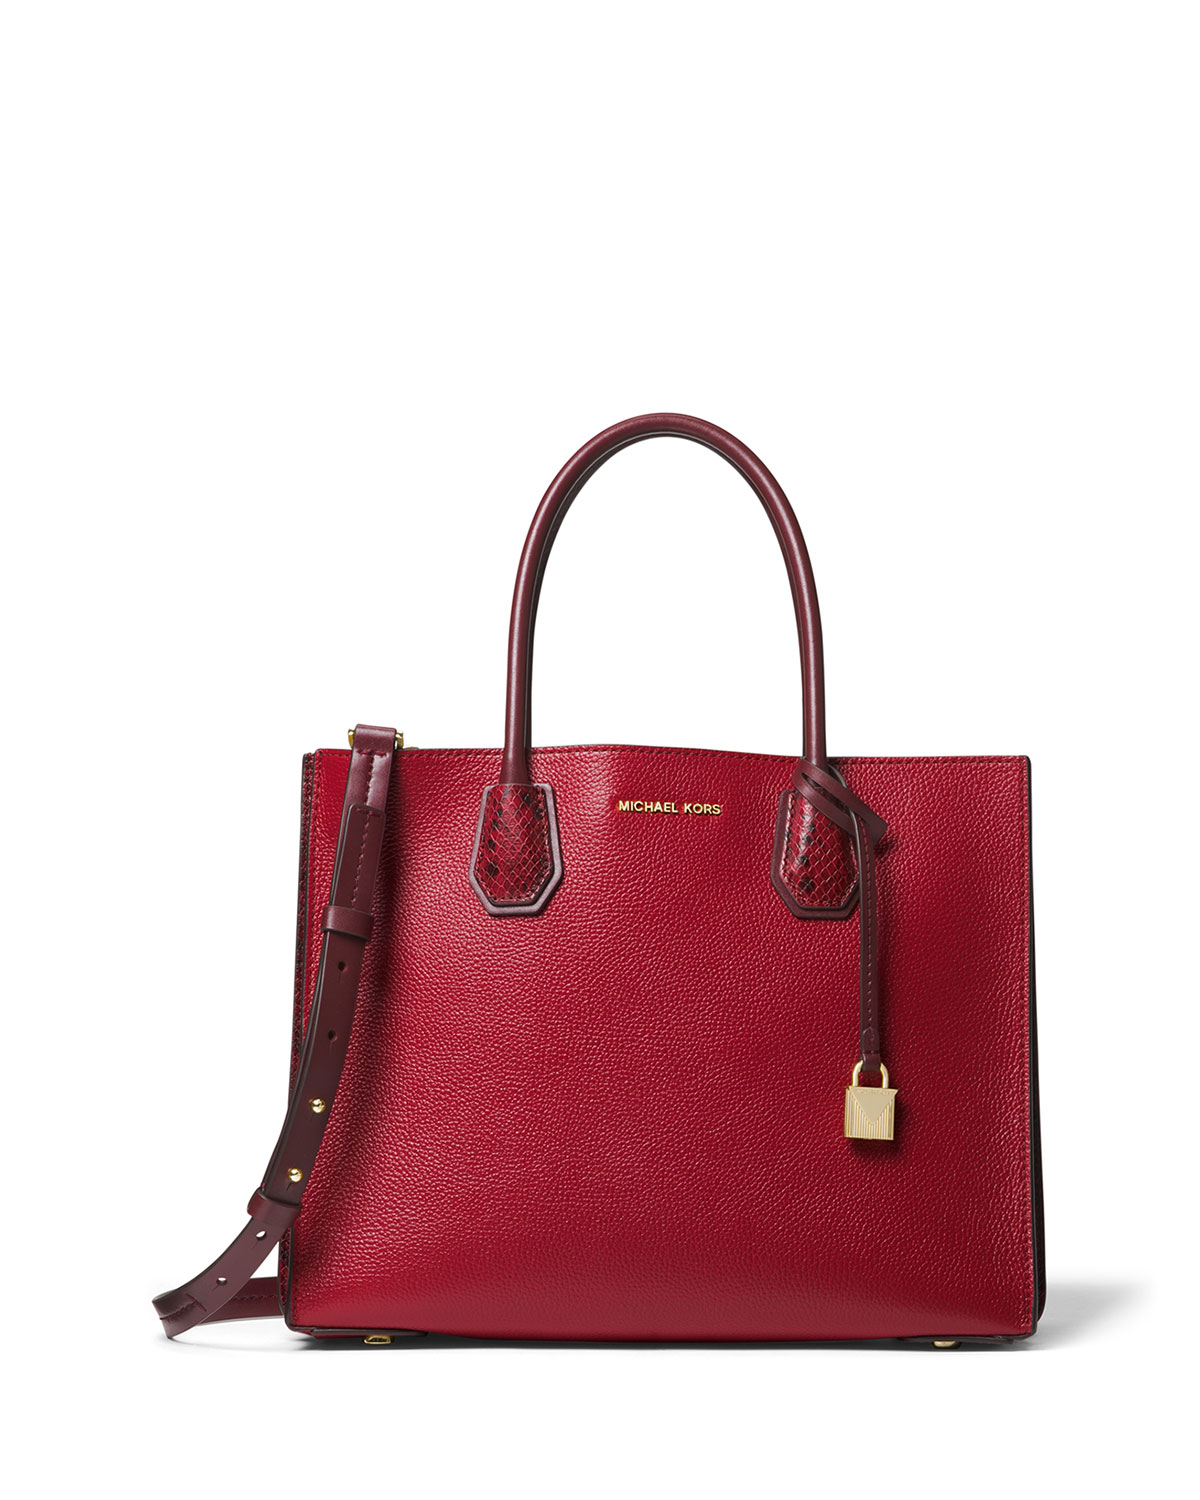 Mercer Large Convertible Tote Bag, Maroon